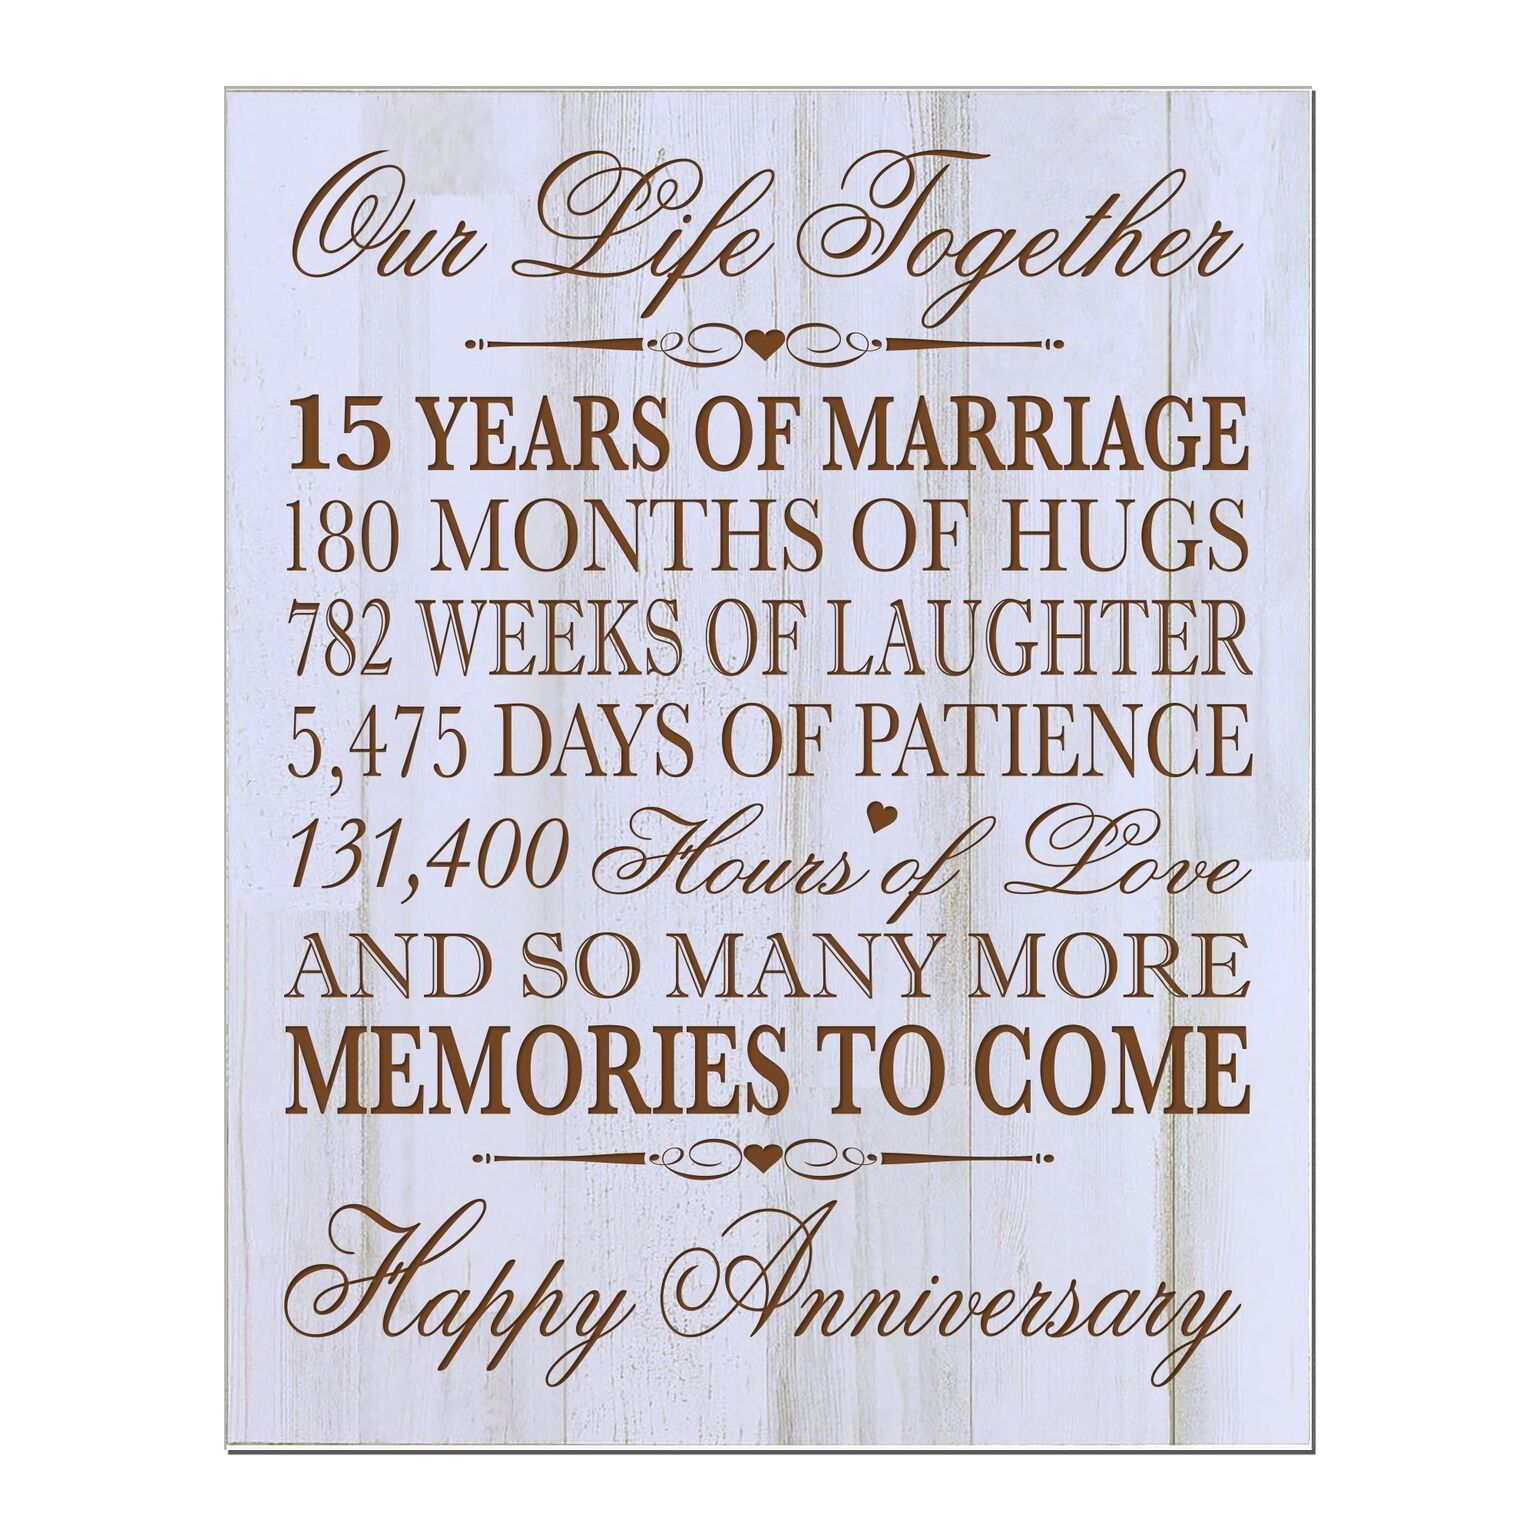 Lifesong Milestones 15th Wedding Anniversary Gift For Couplecustom